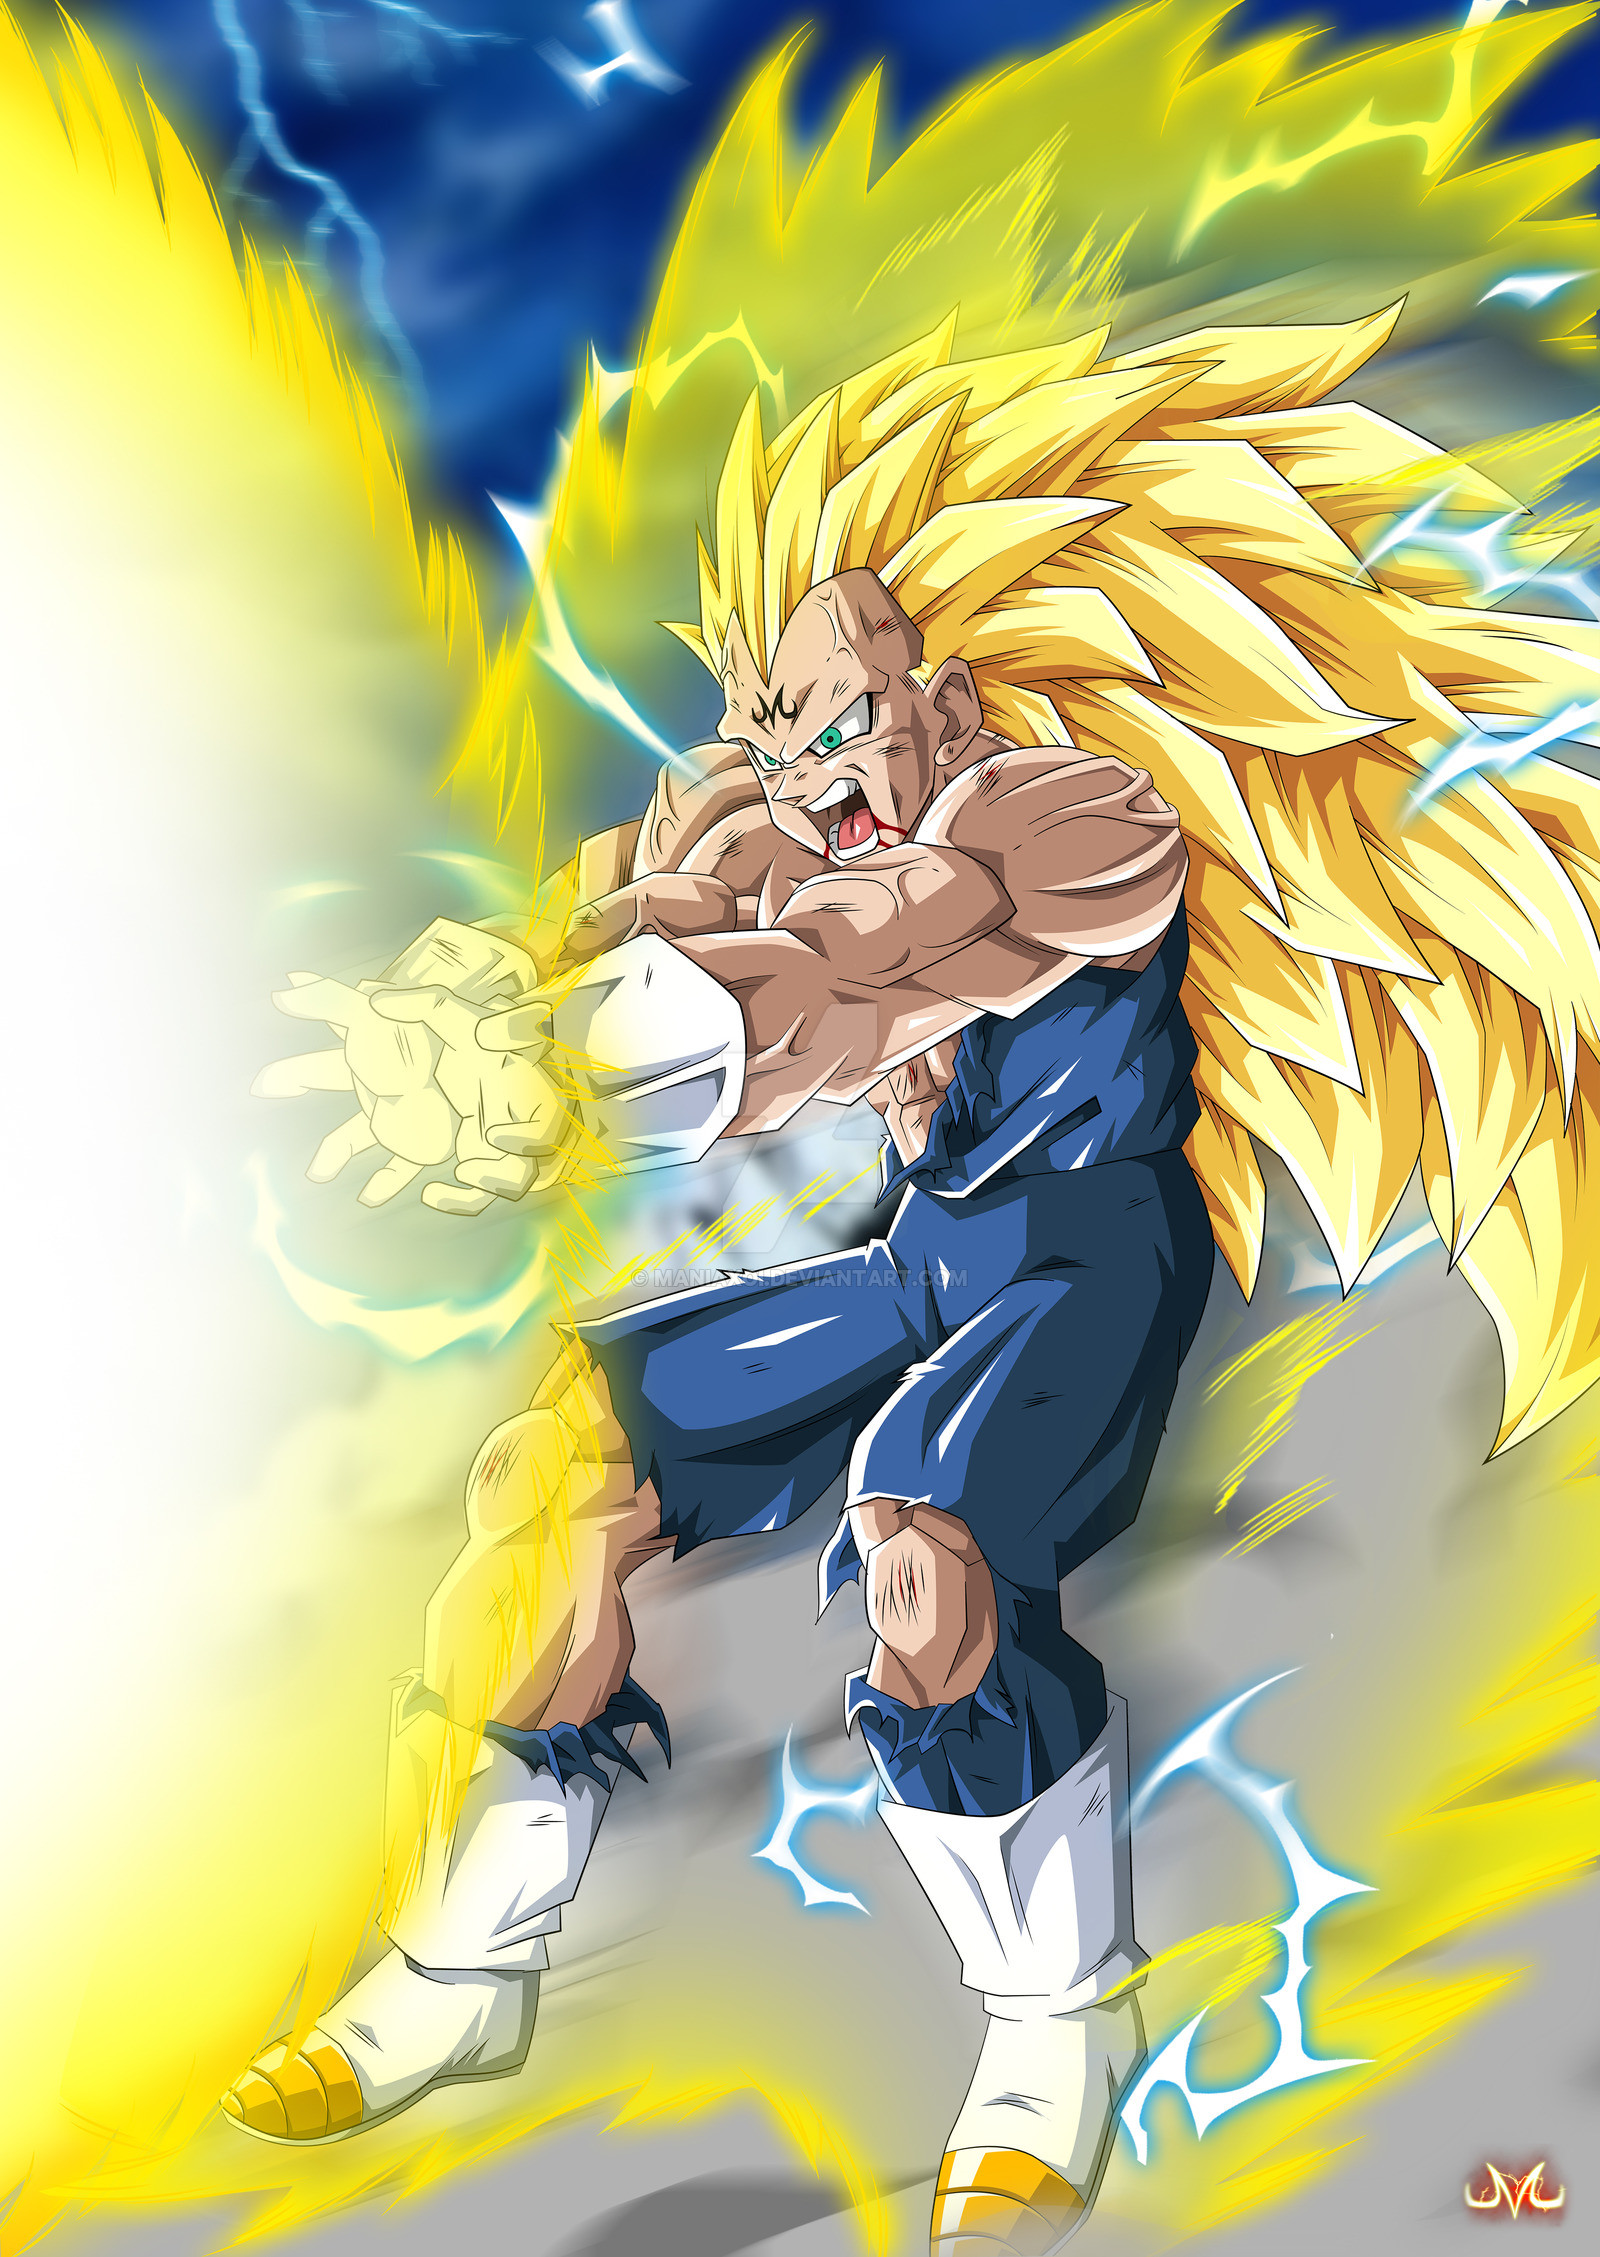 Majin vegeta wallpapers 66 pictures - Dragon ball z majin vegeta wallpaper ...